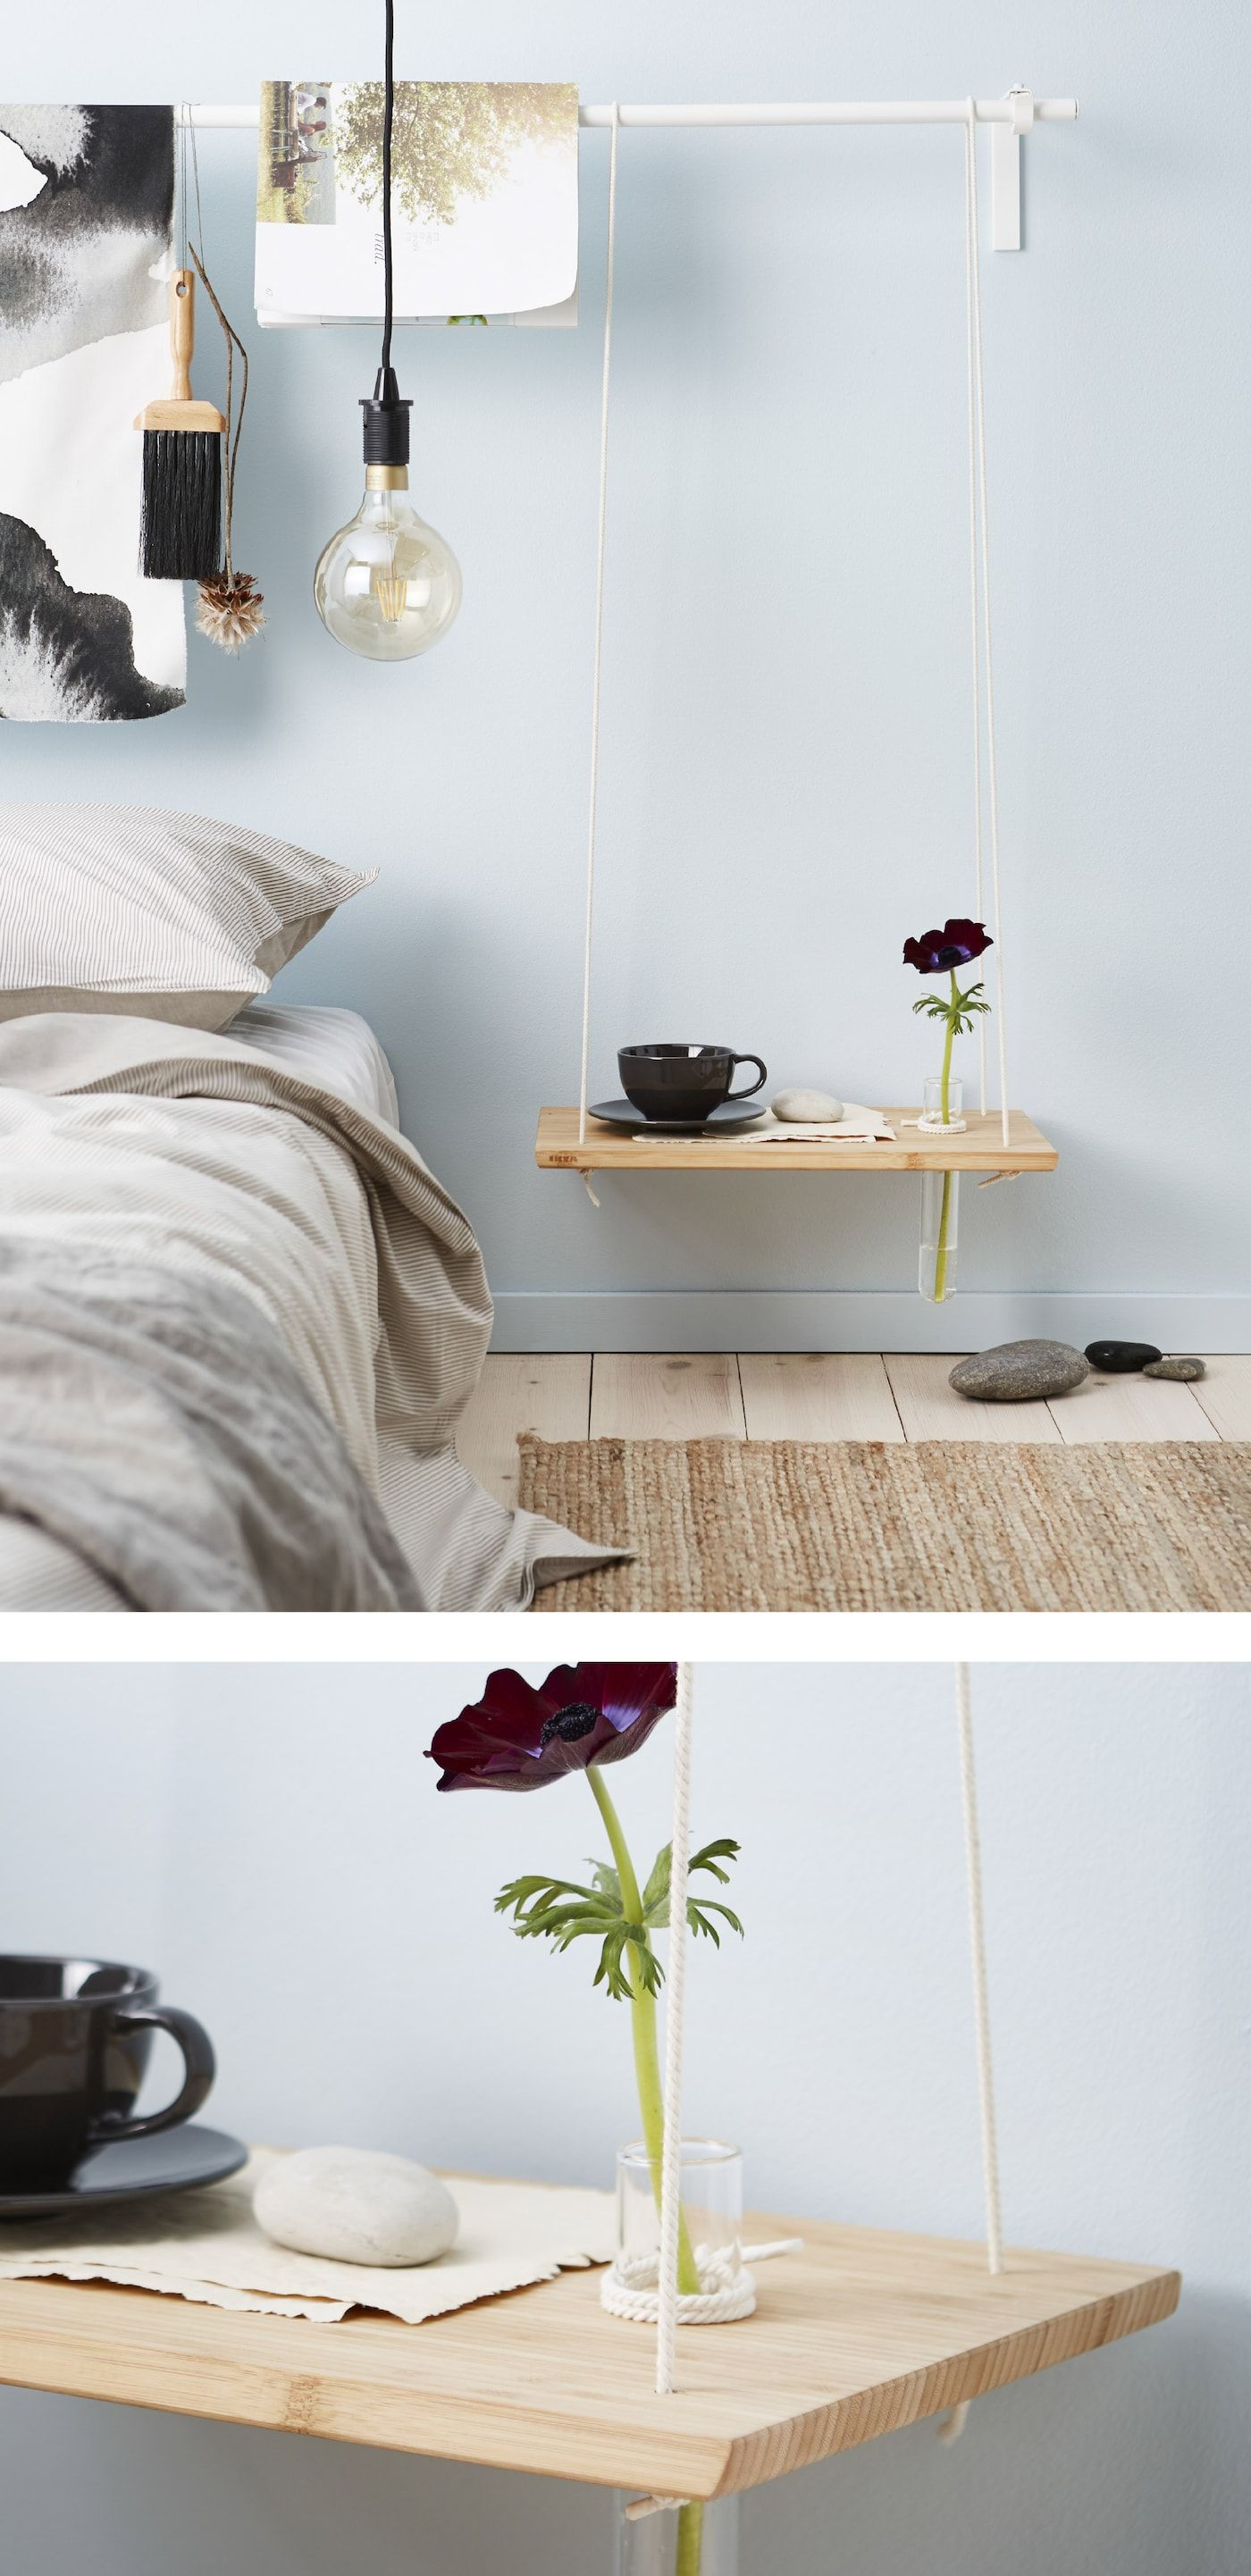 Diy Bedside Table Ideas In 2020 Side Tables Bedroom Home Decor Diy Home Decor